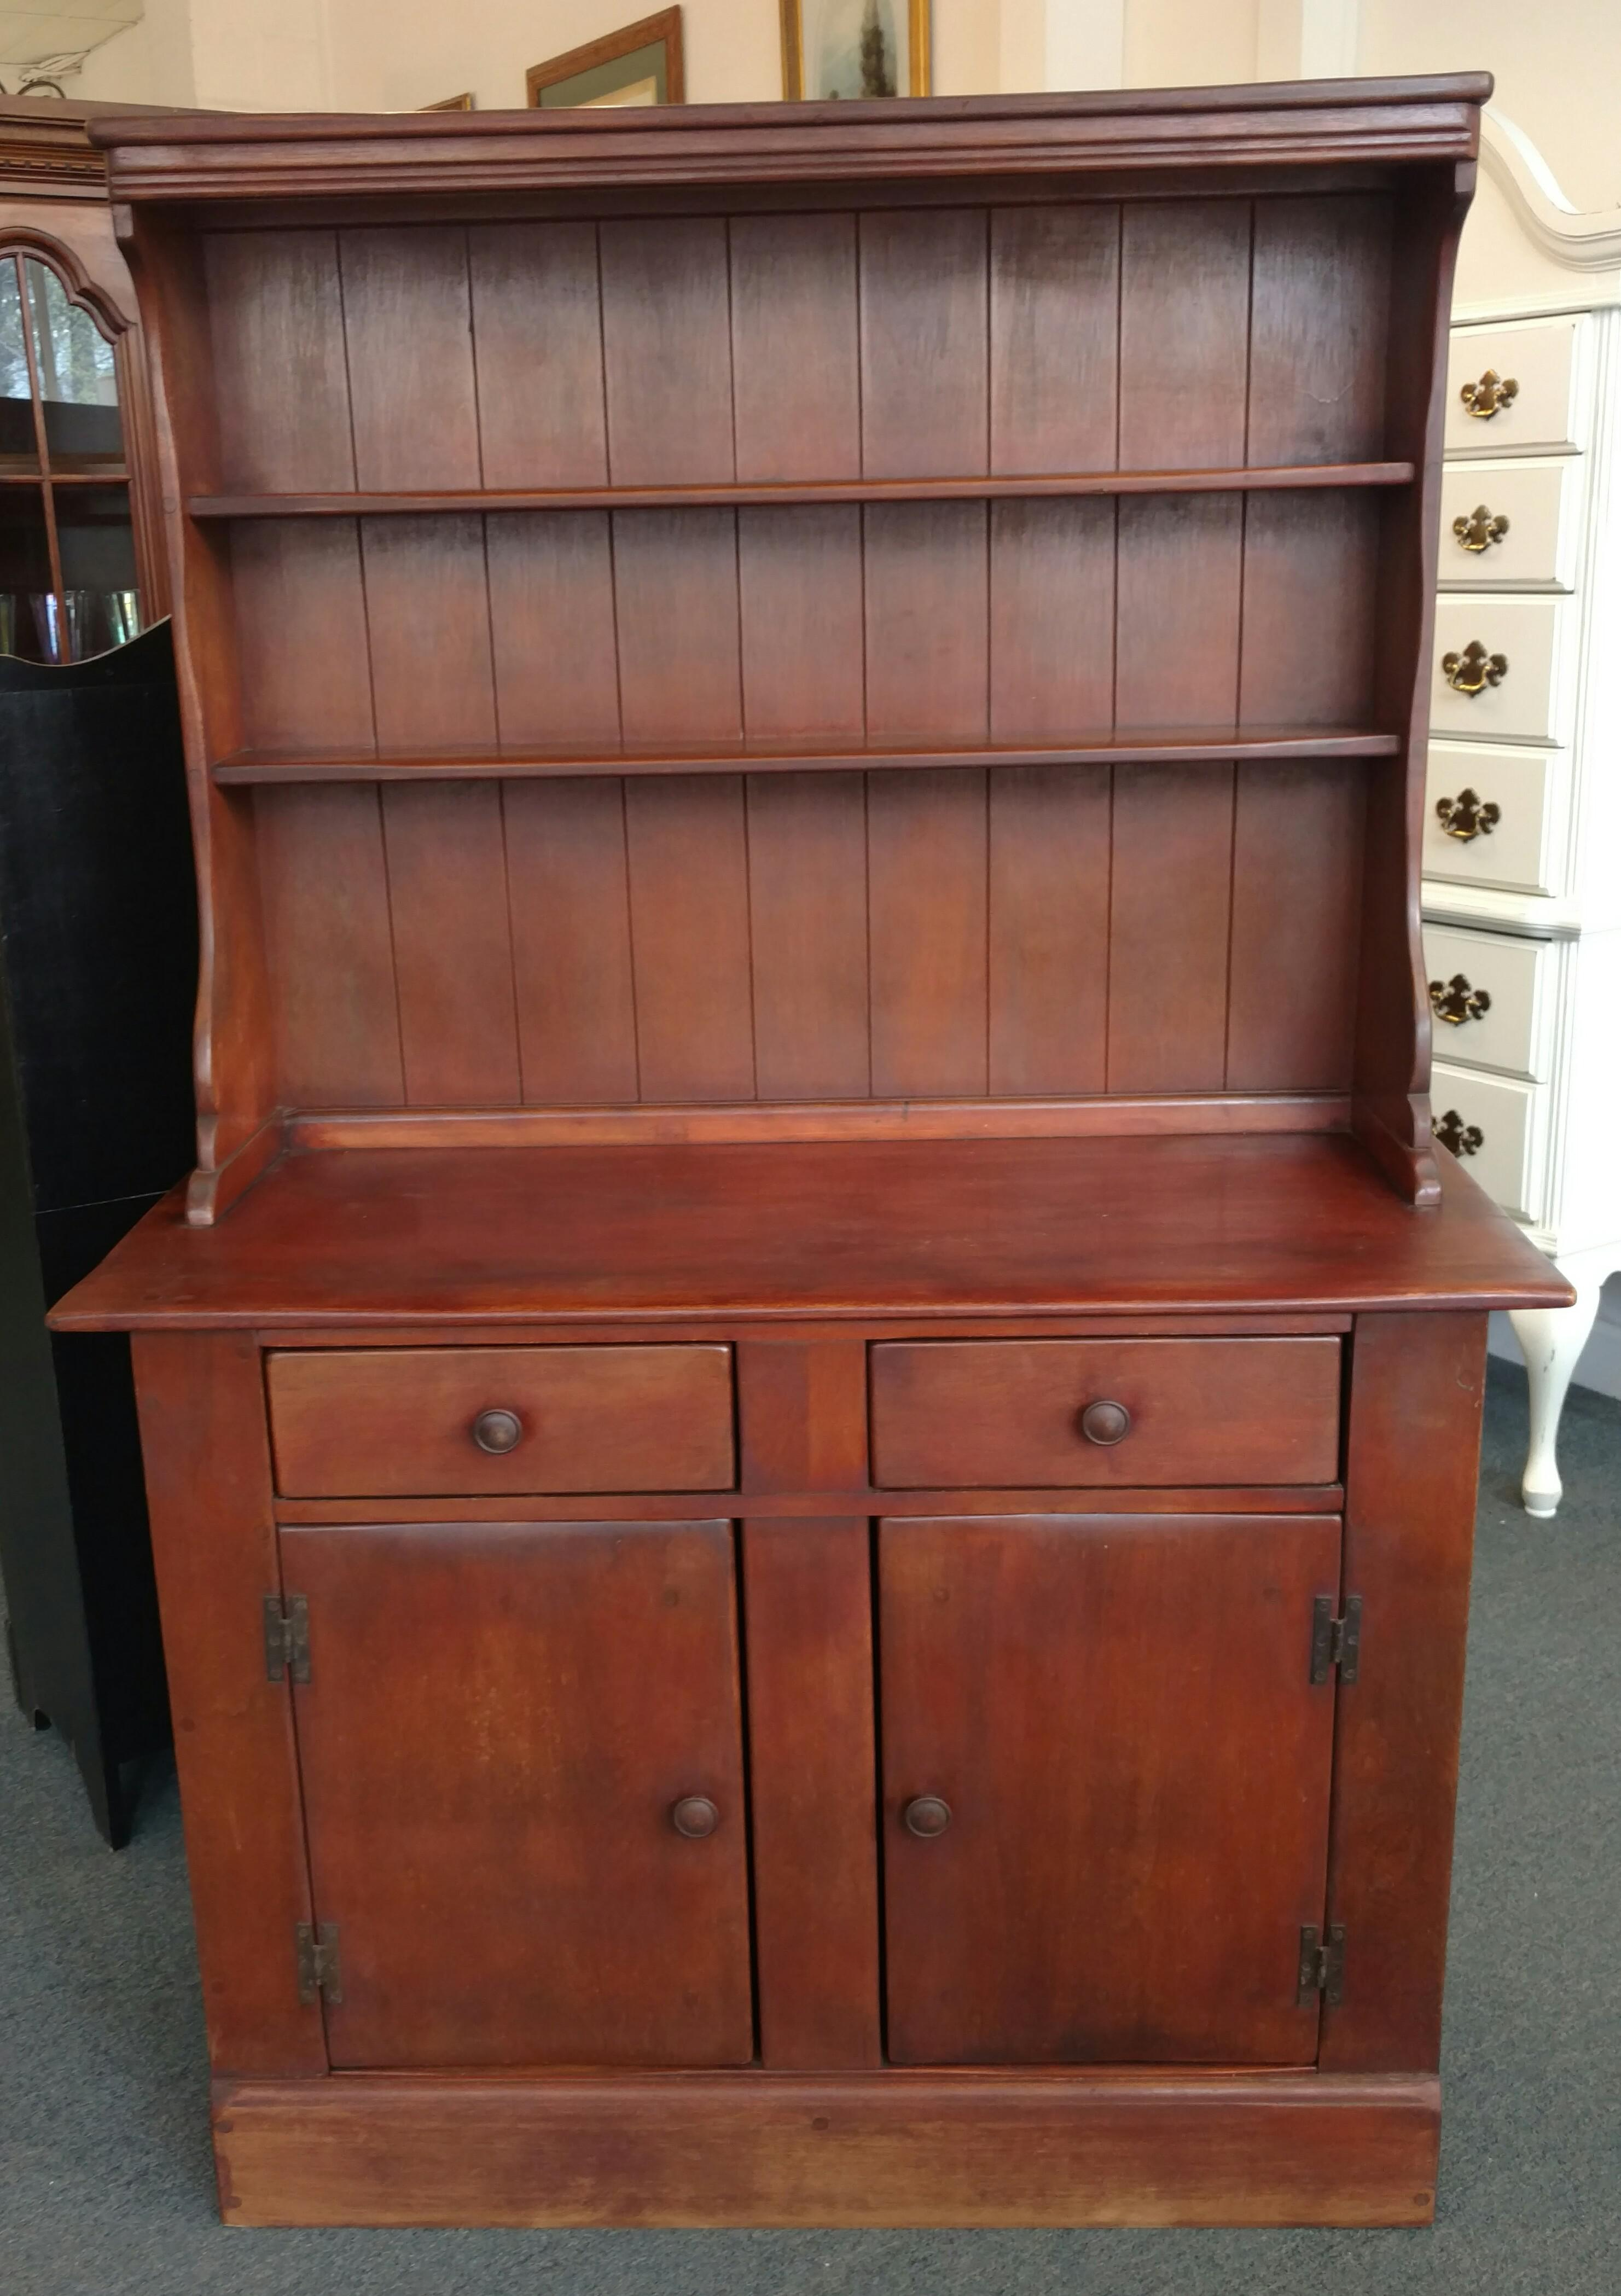 Beau Charming Country Maple Hutch By Priscilla Colonial Furniture Company.  Spacious Two Door Cabinet And Two